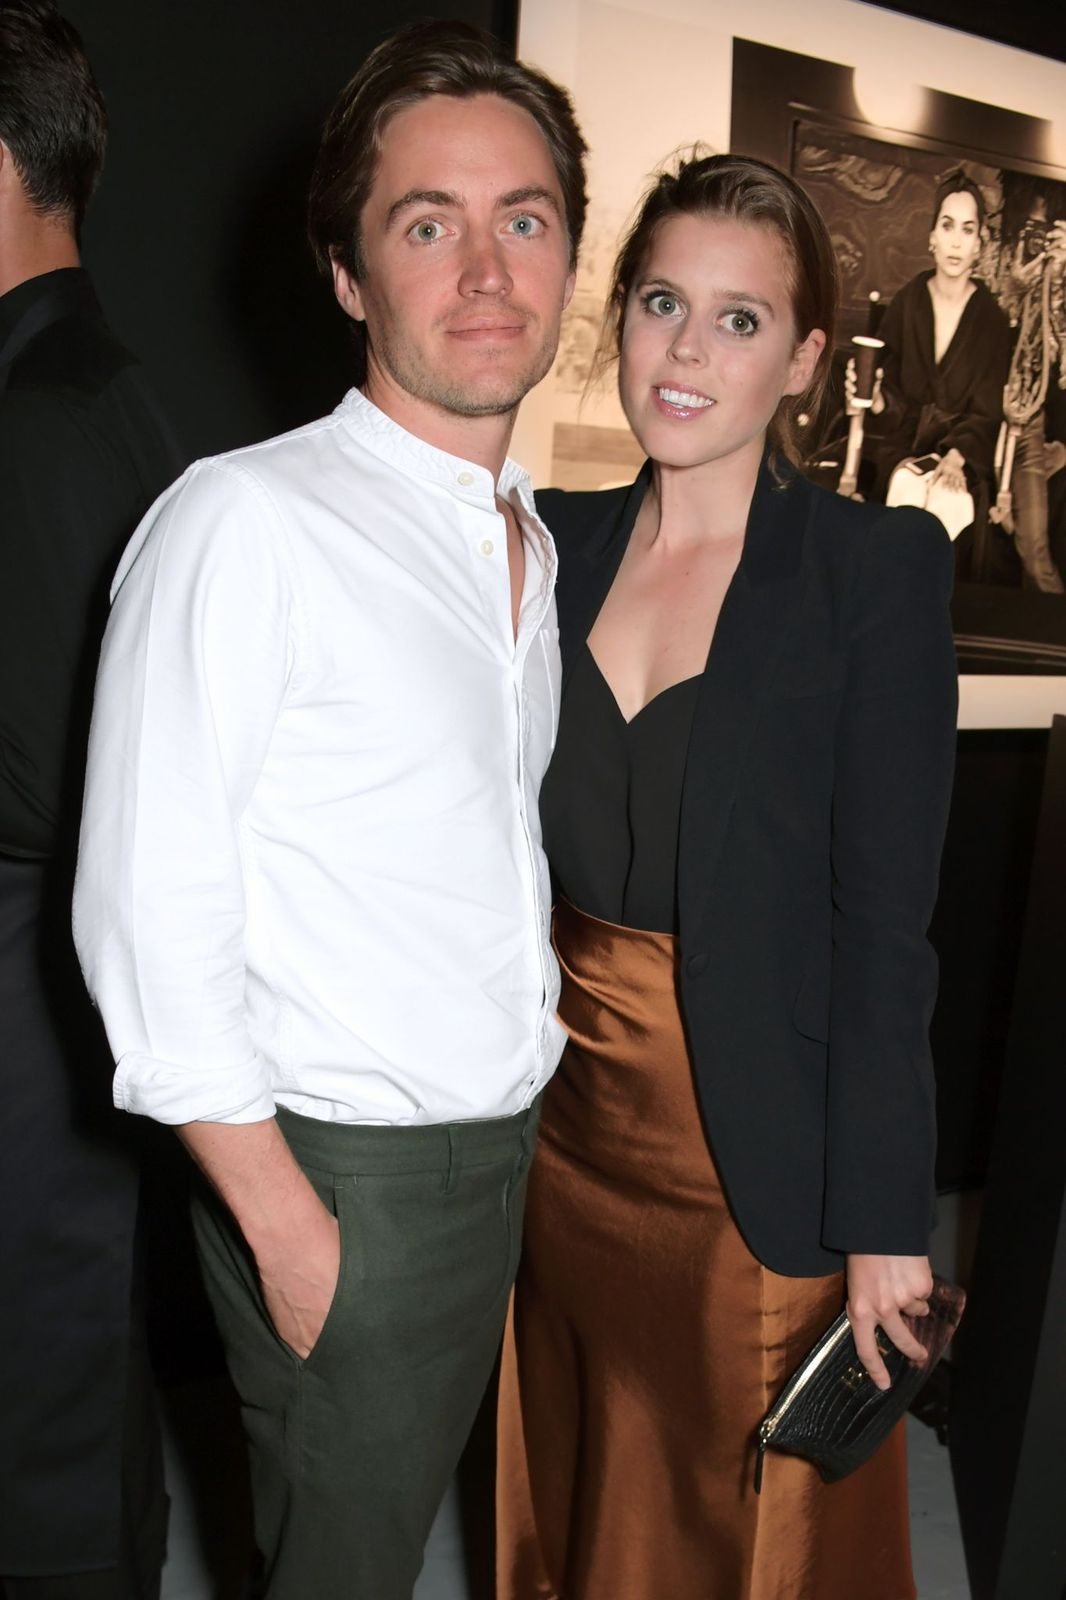 Edoardo Mapelli Mozzi and Princess Beatrice of York at the Lenny Kravitz & Dom Perignon 'Assemblage' exhibition on July 10, 2019 in London, England | Photo: Getty Images